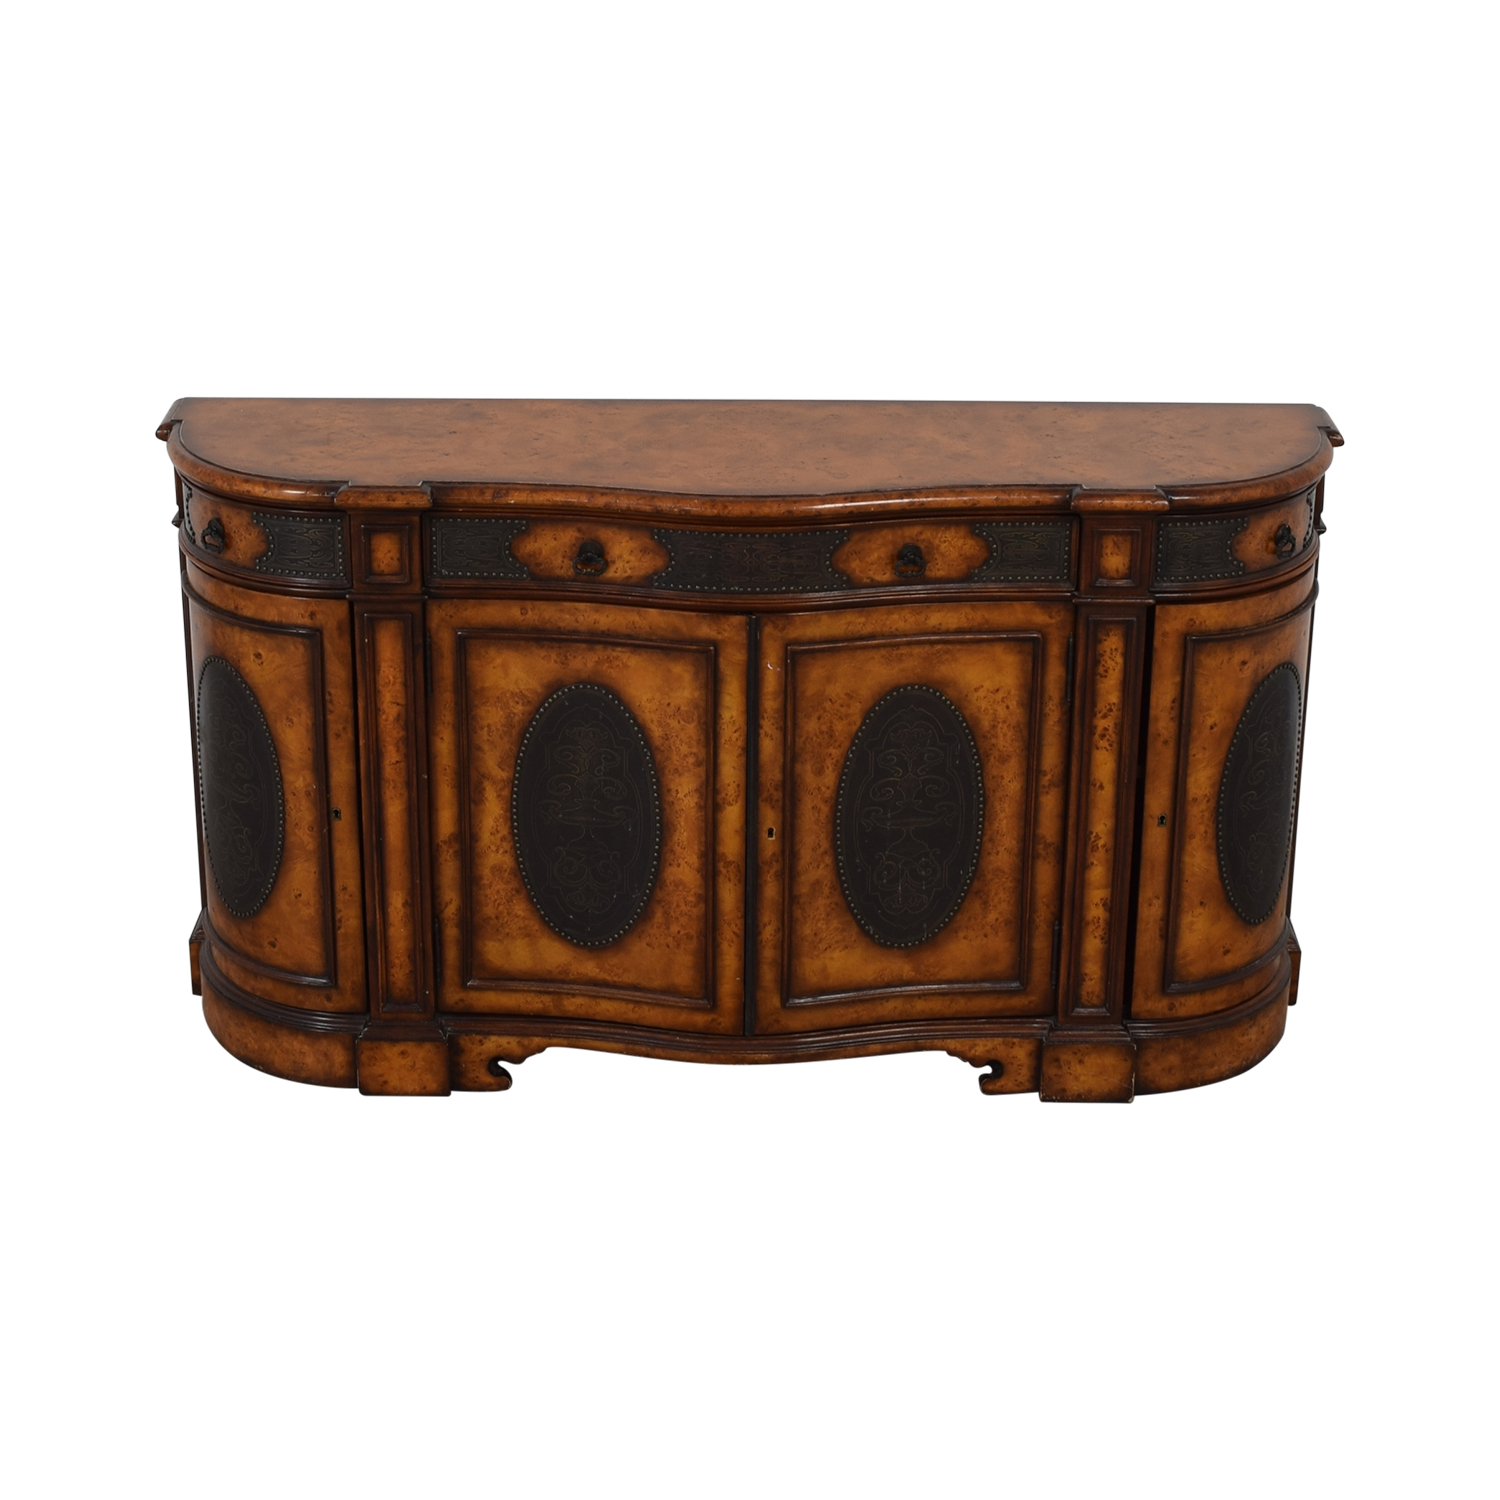 ABC Carpet & Home ABC Carpet & Home Theodore Alexander Sideboard Buffet price